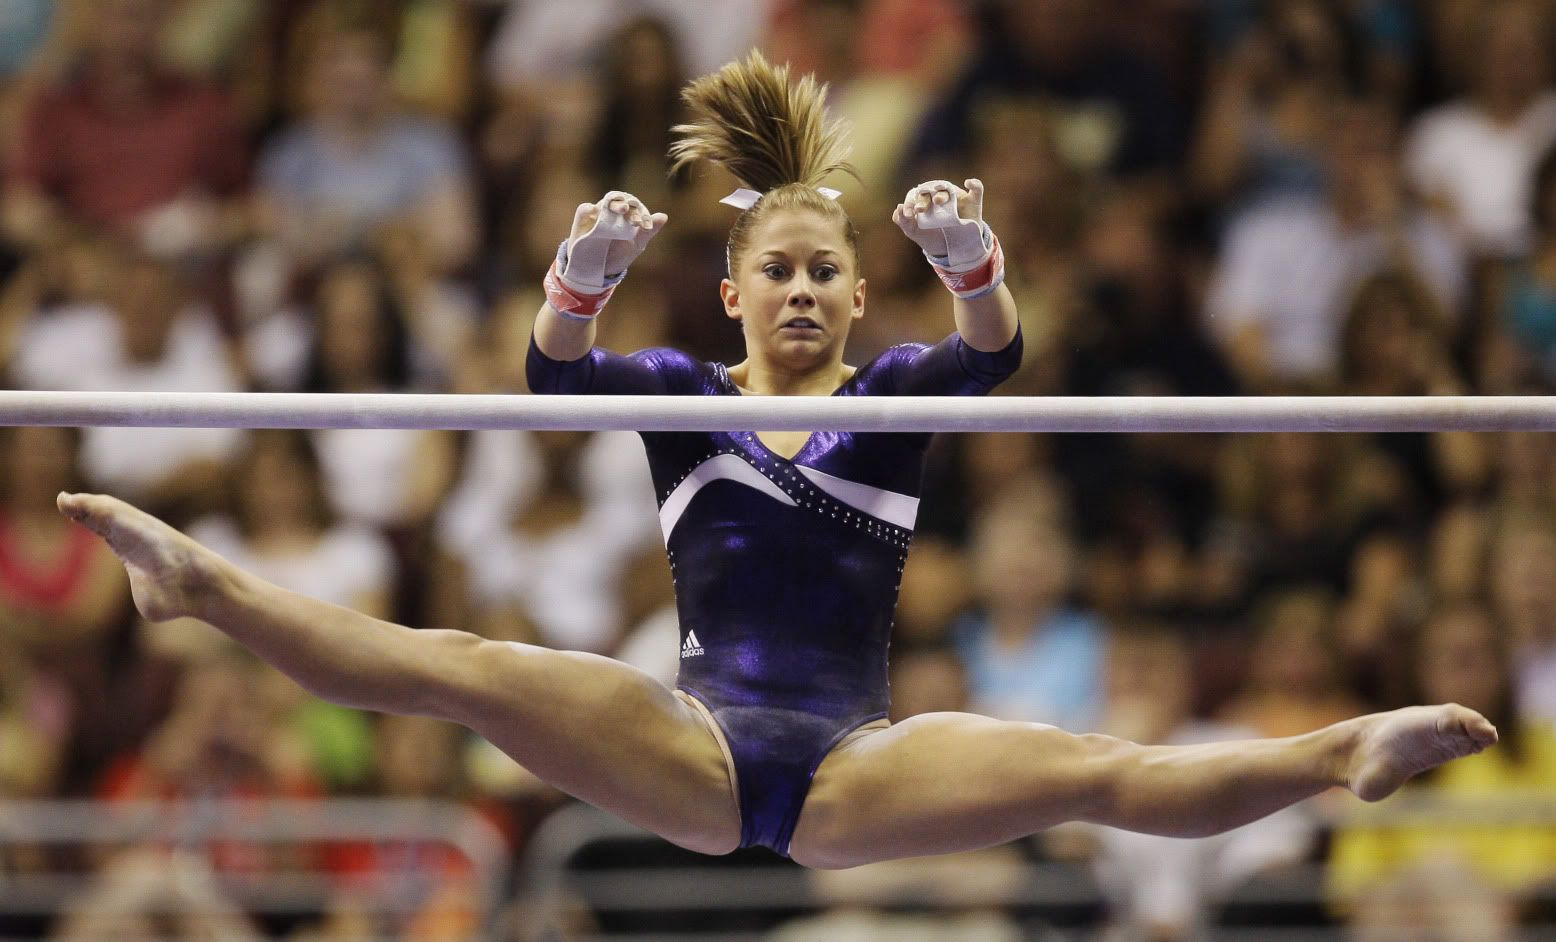 shawn johnson comments in rio